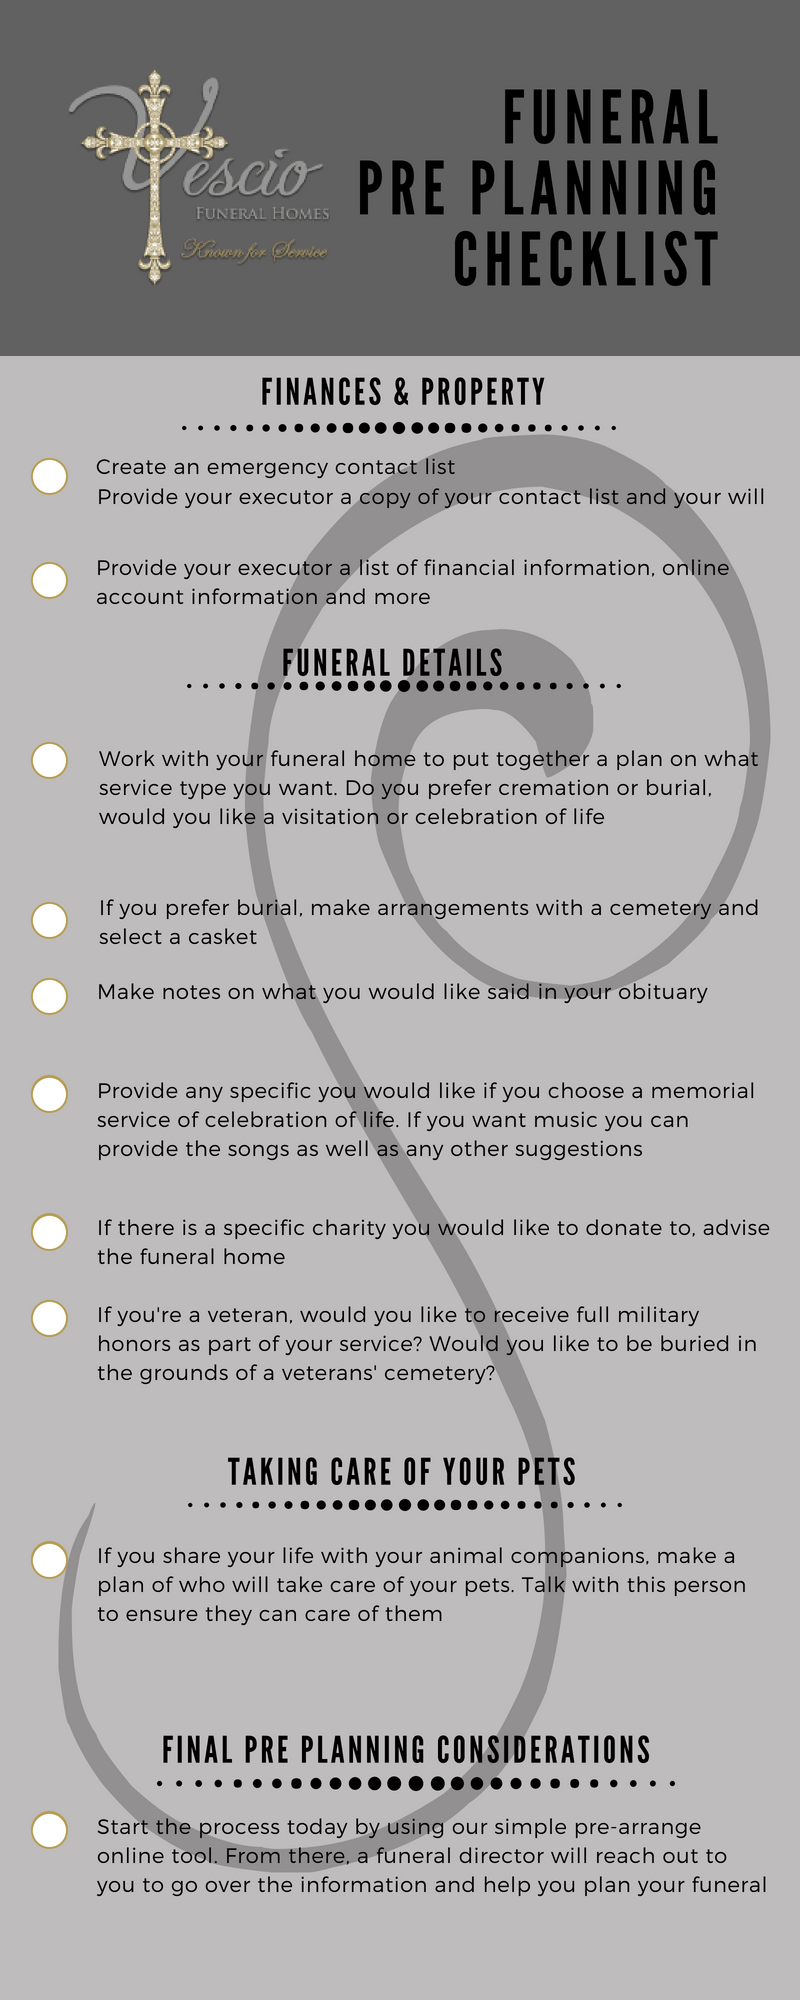 funeral pre planning checklist vescio funeral homes